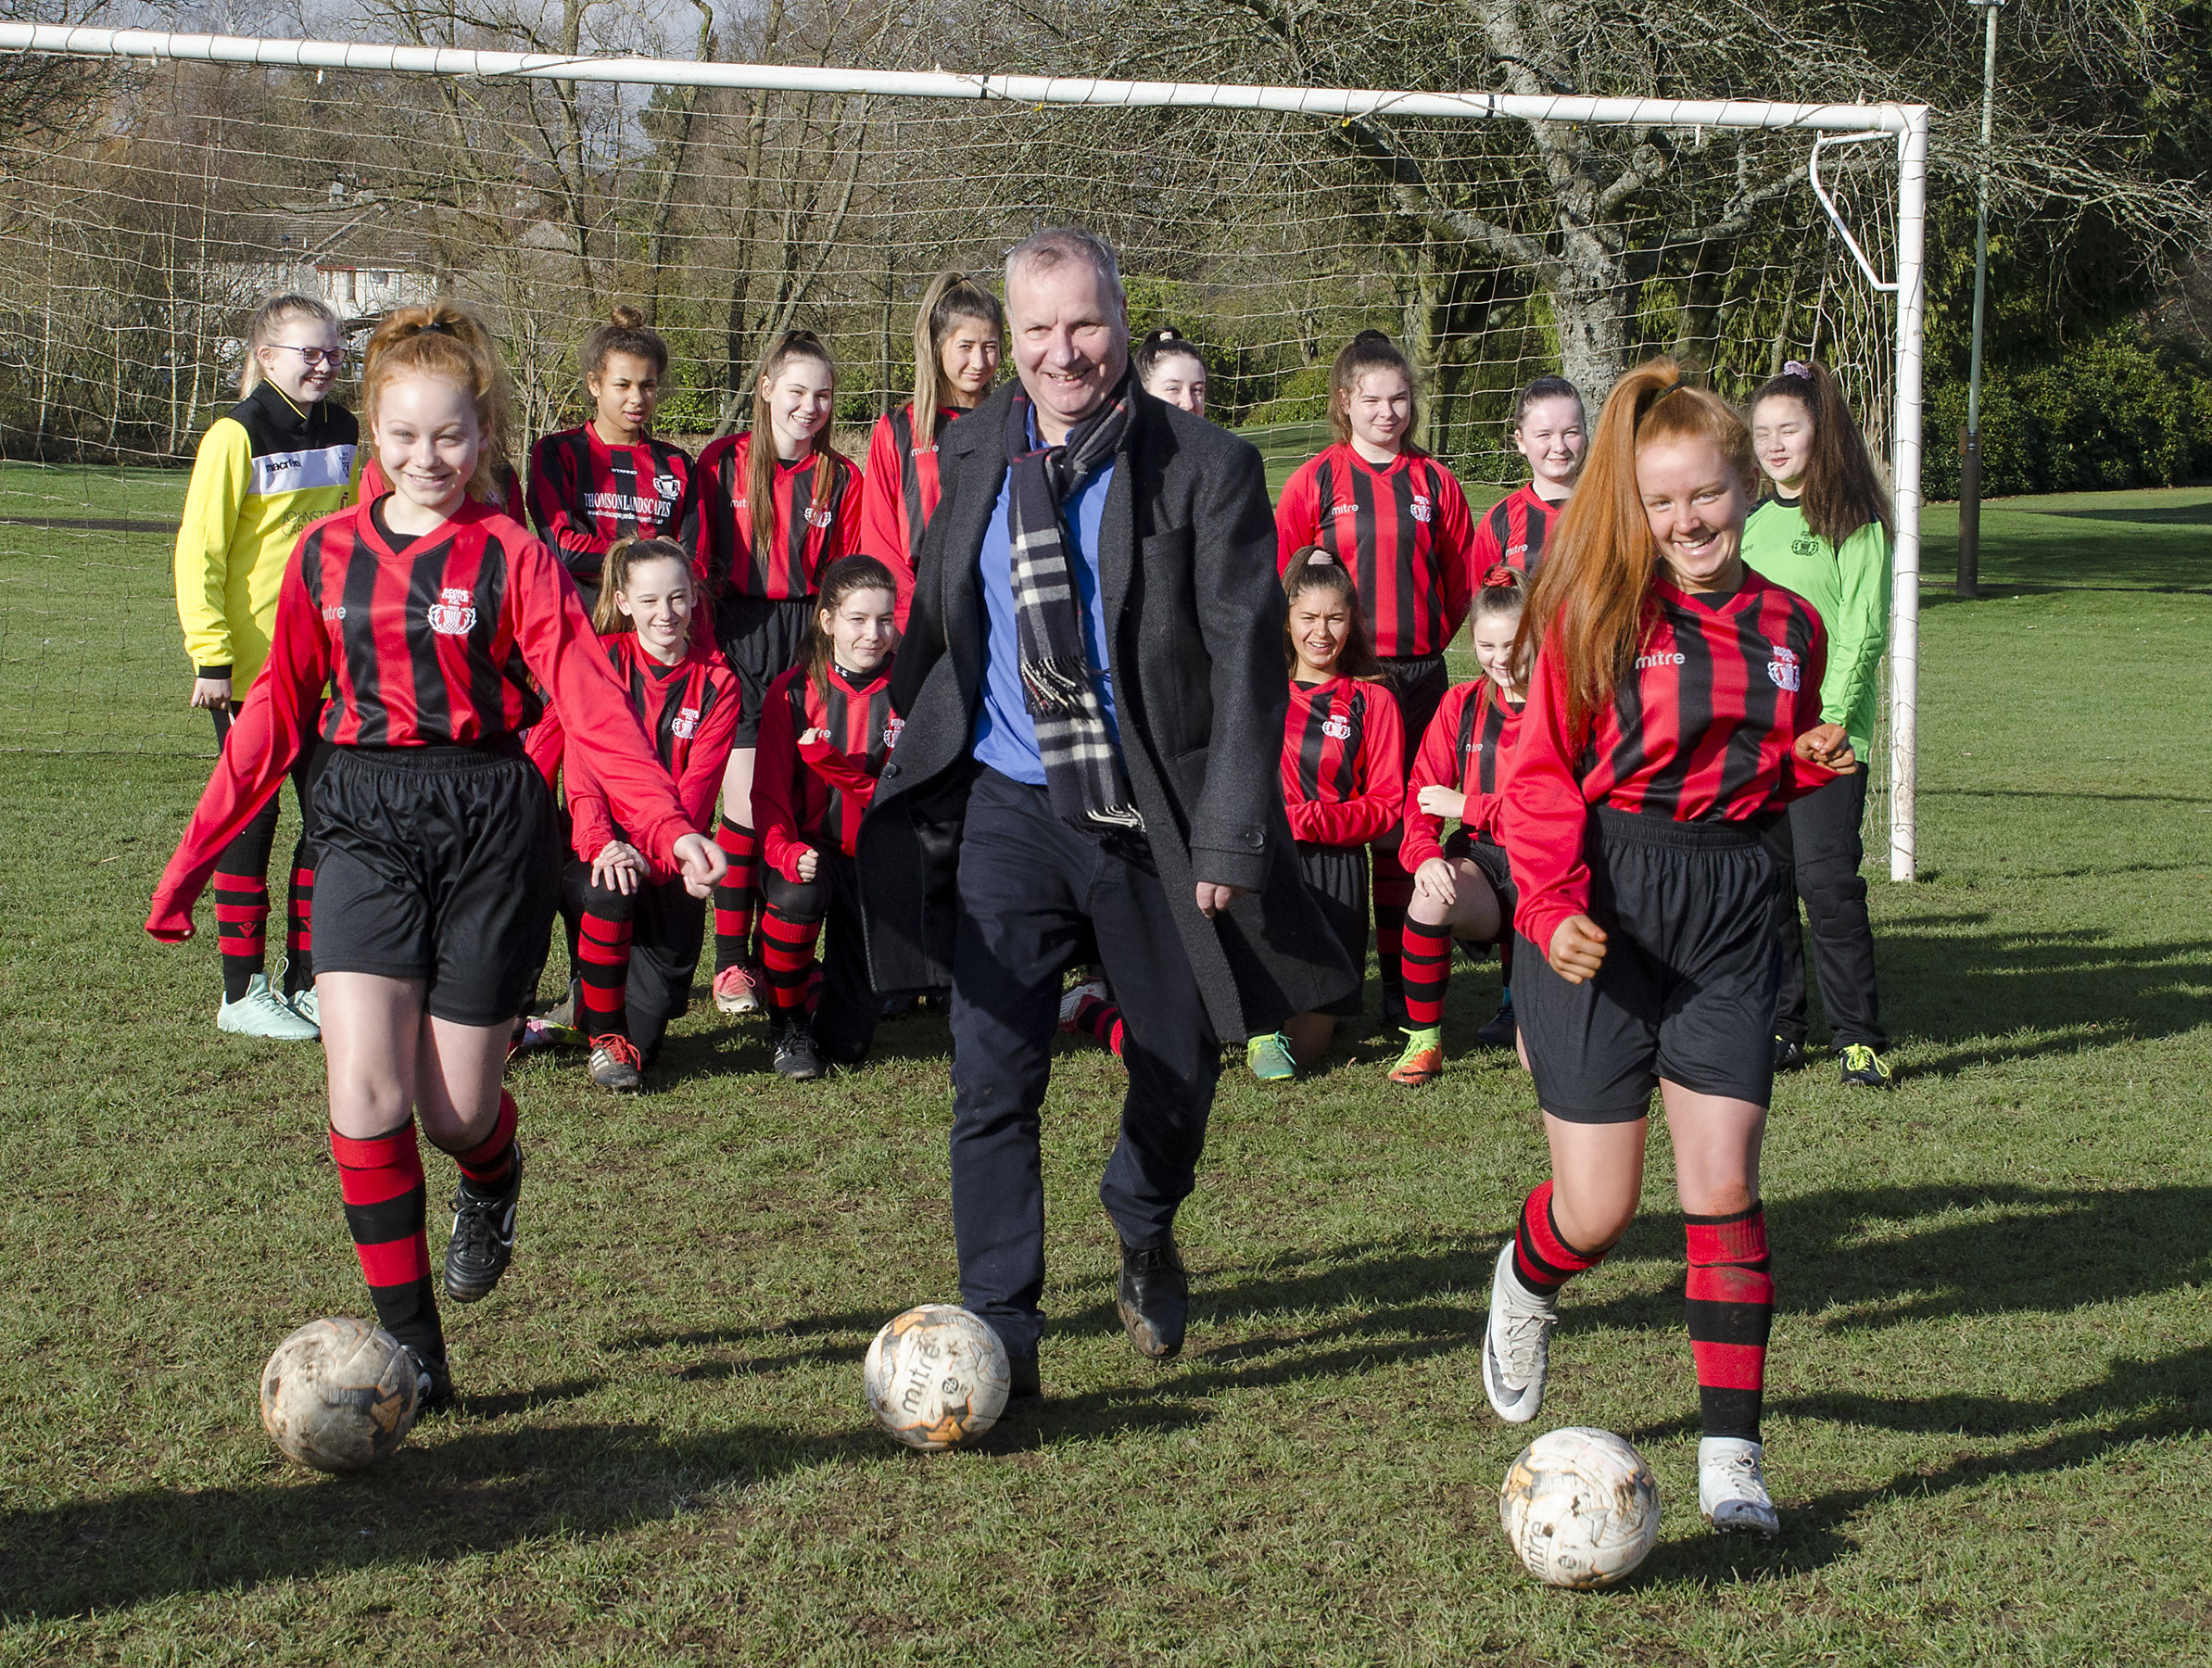 Pete Wishart donated the strips in time for the team's first match